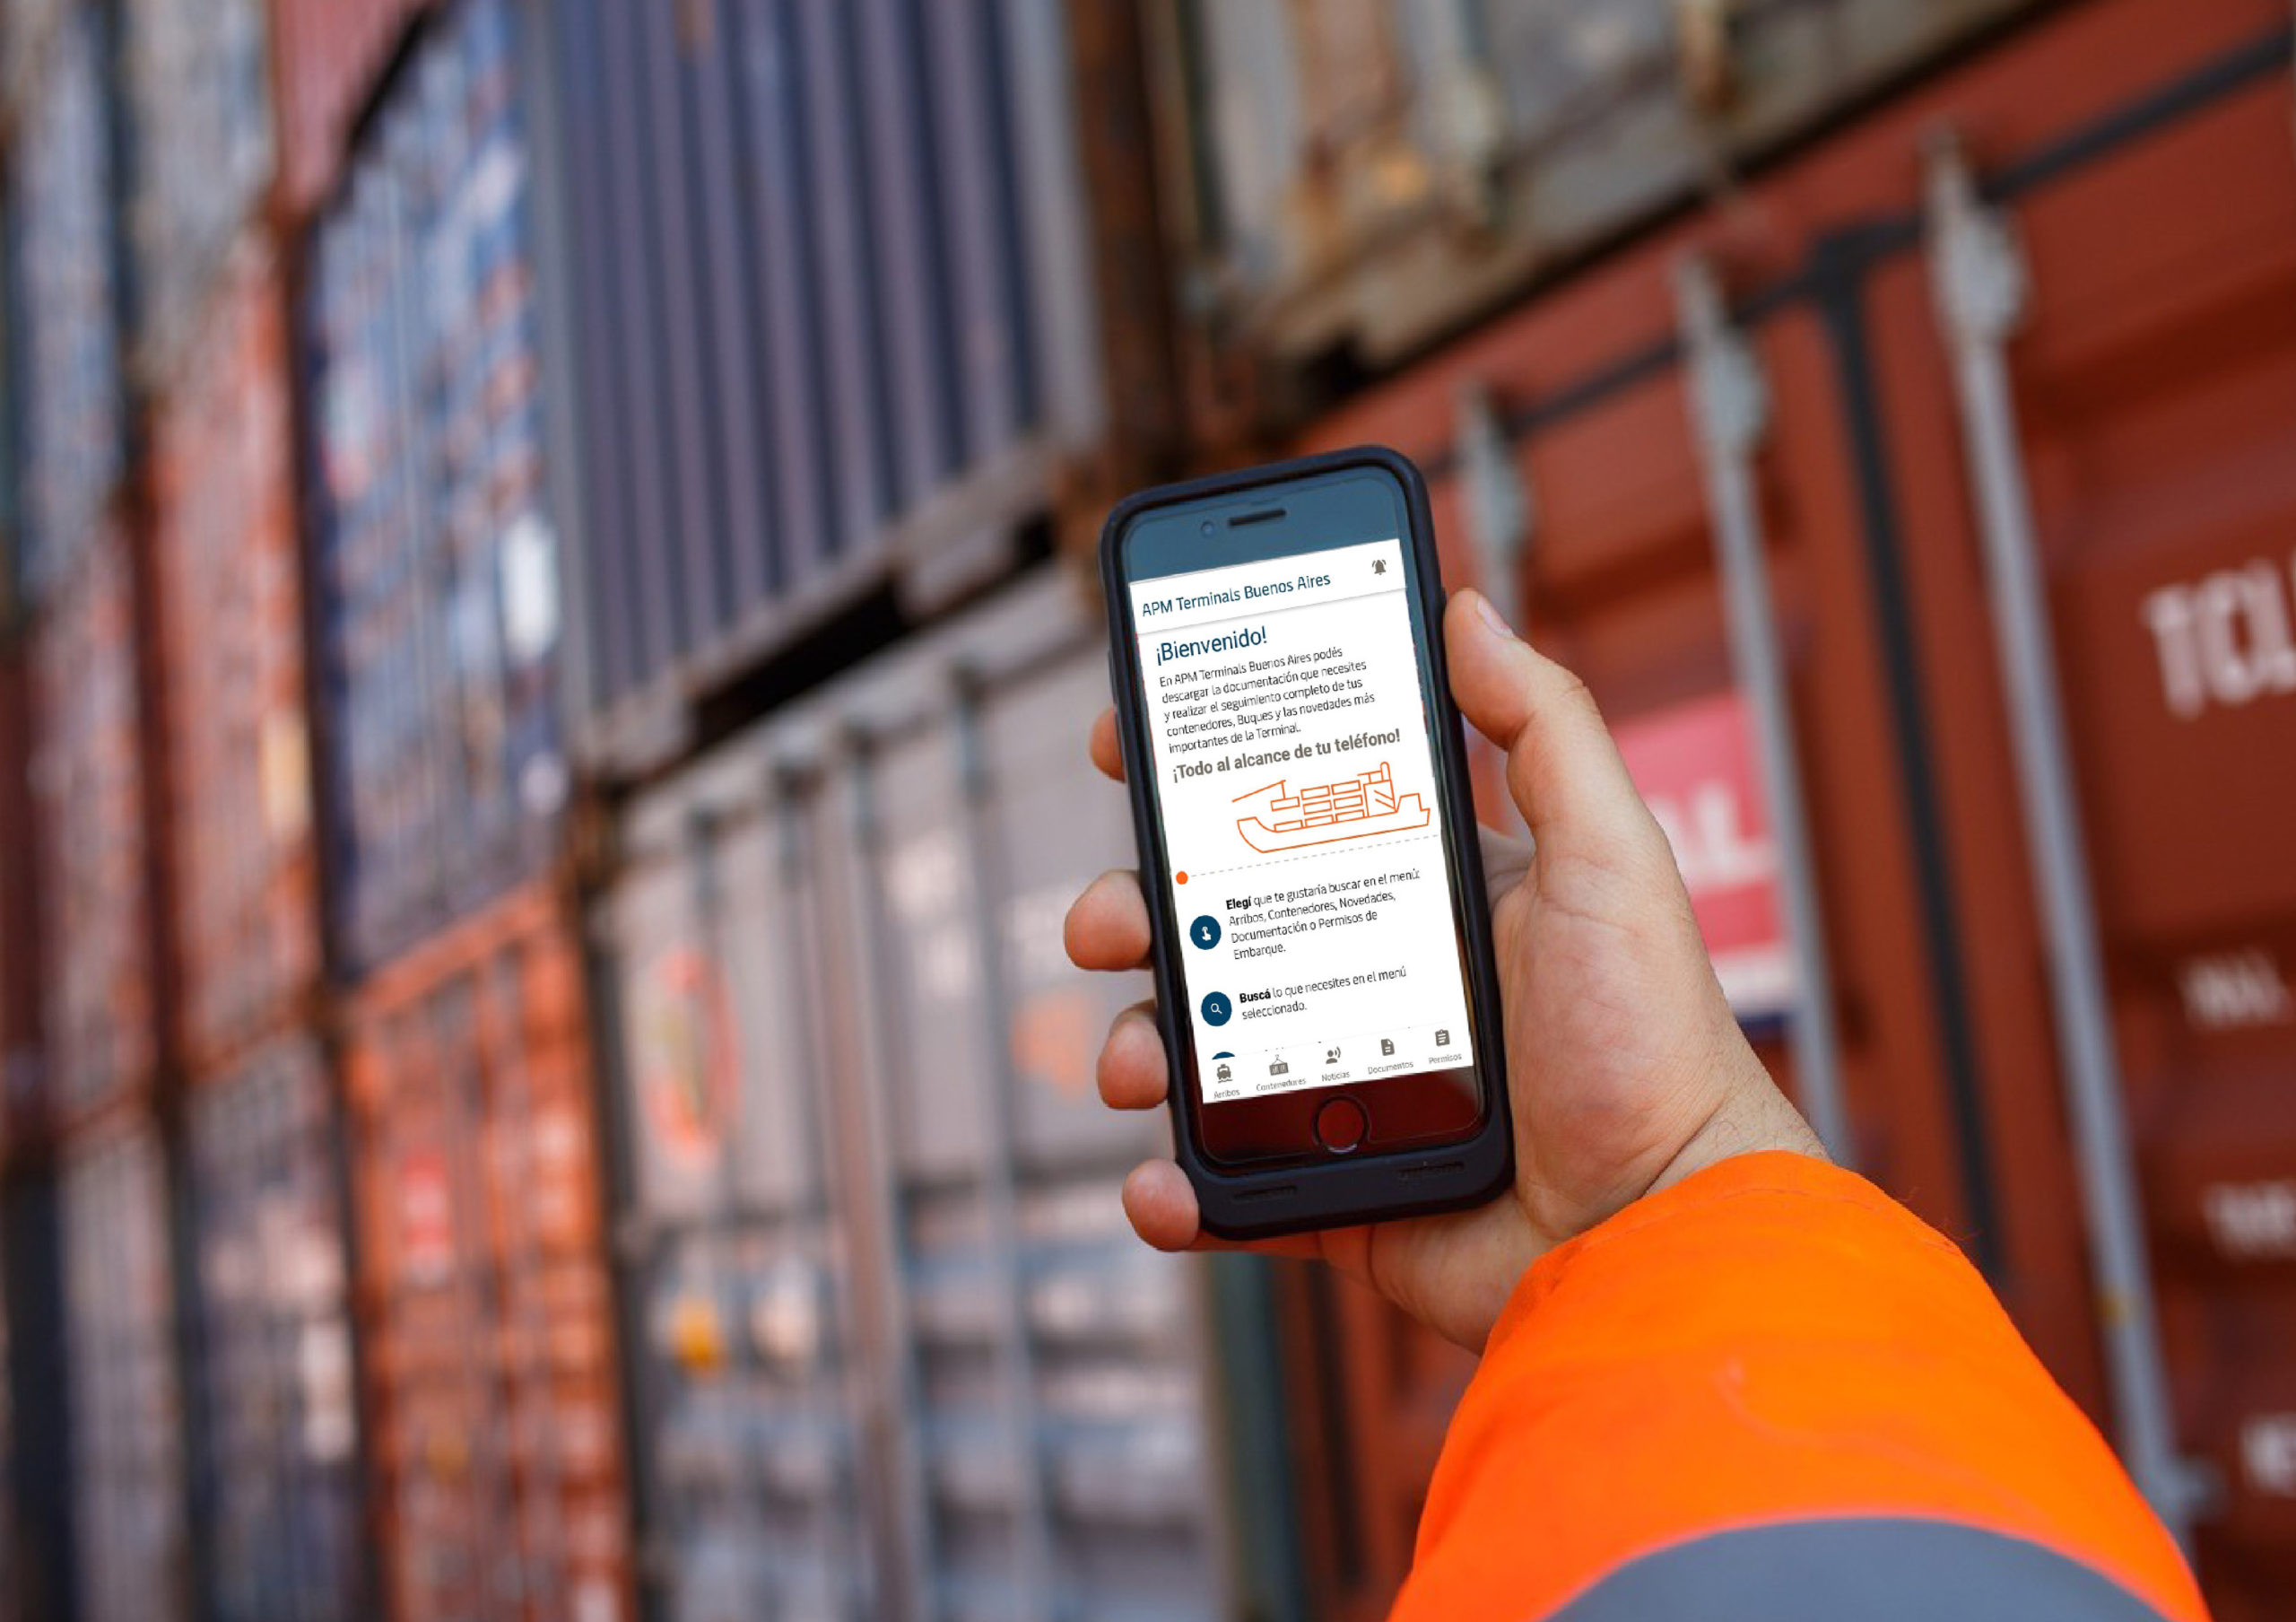 APMT Buenos Aires launches cargo tracking app